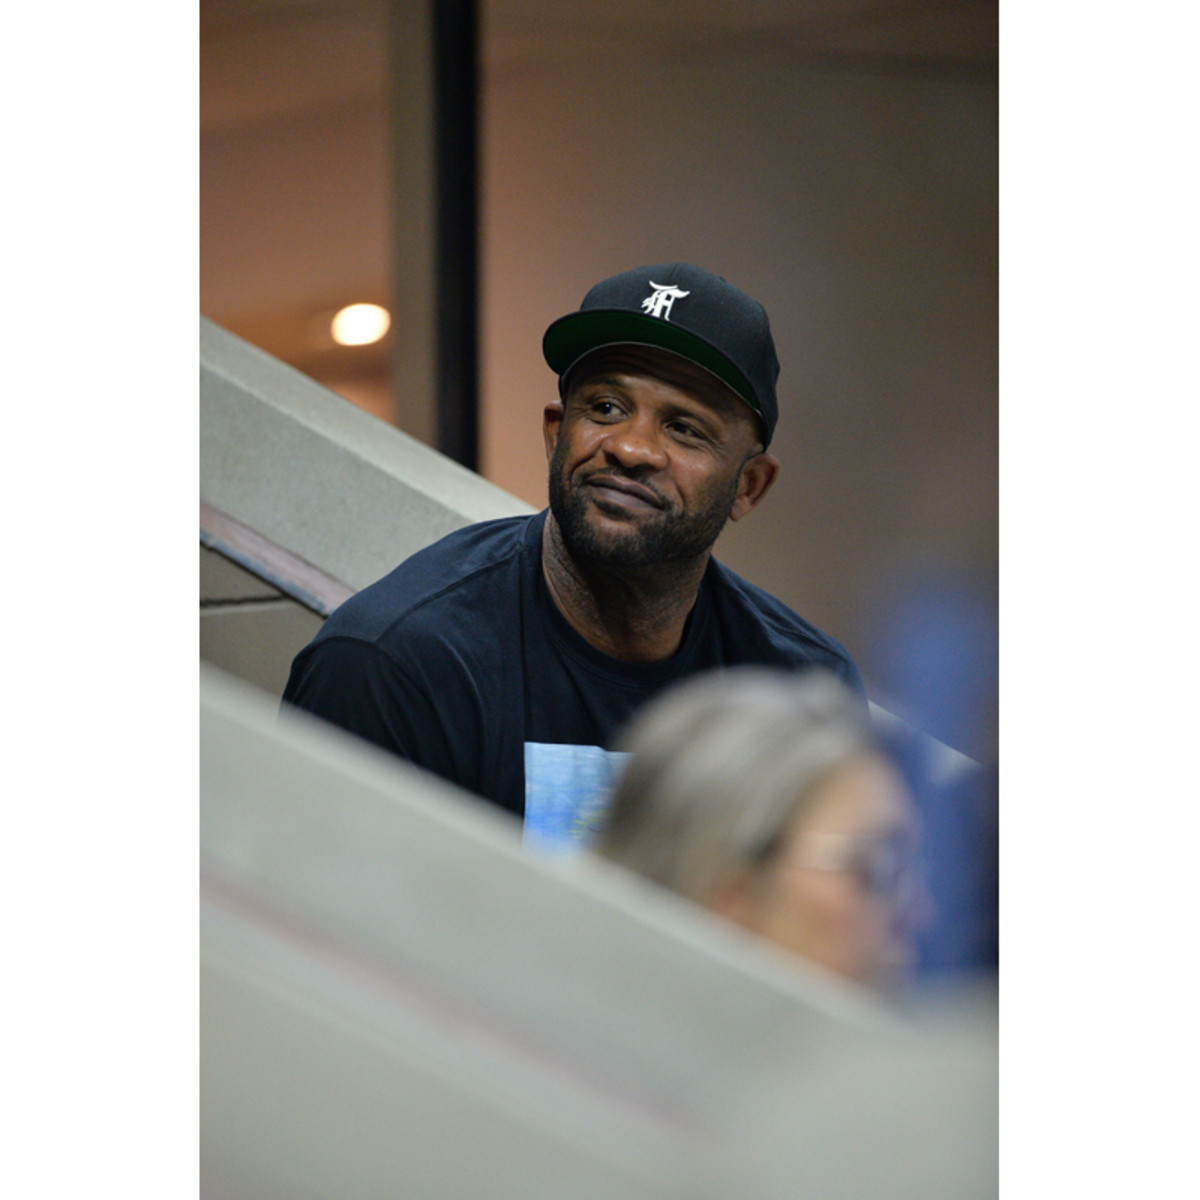 Former Yankees pitcher CC Sabathia watches the 2021 US Open from the Grey Goose suite on Wednesday, September 1st.